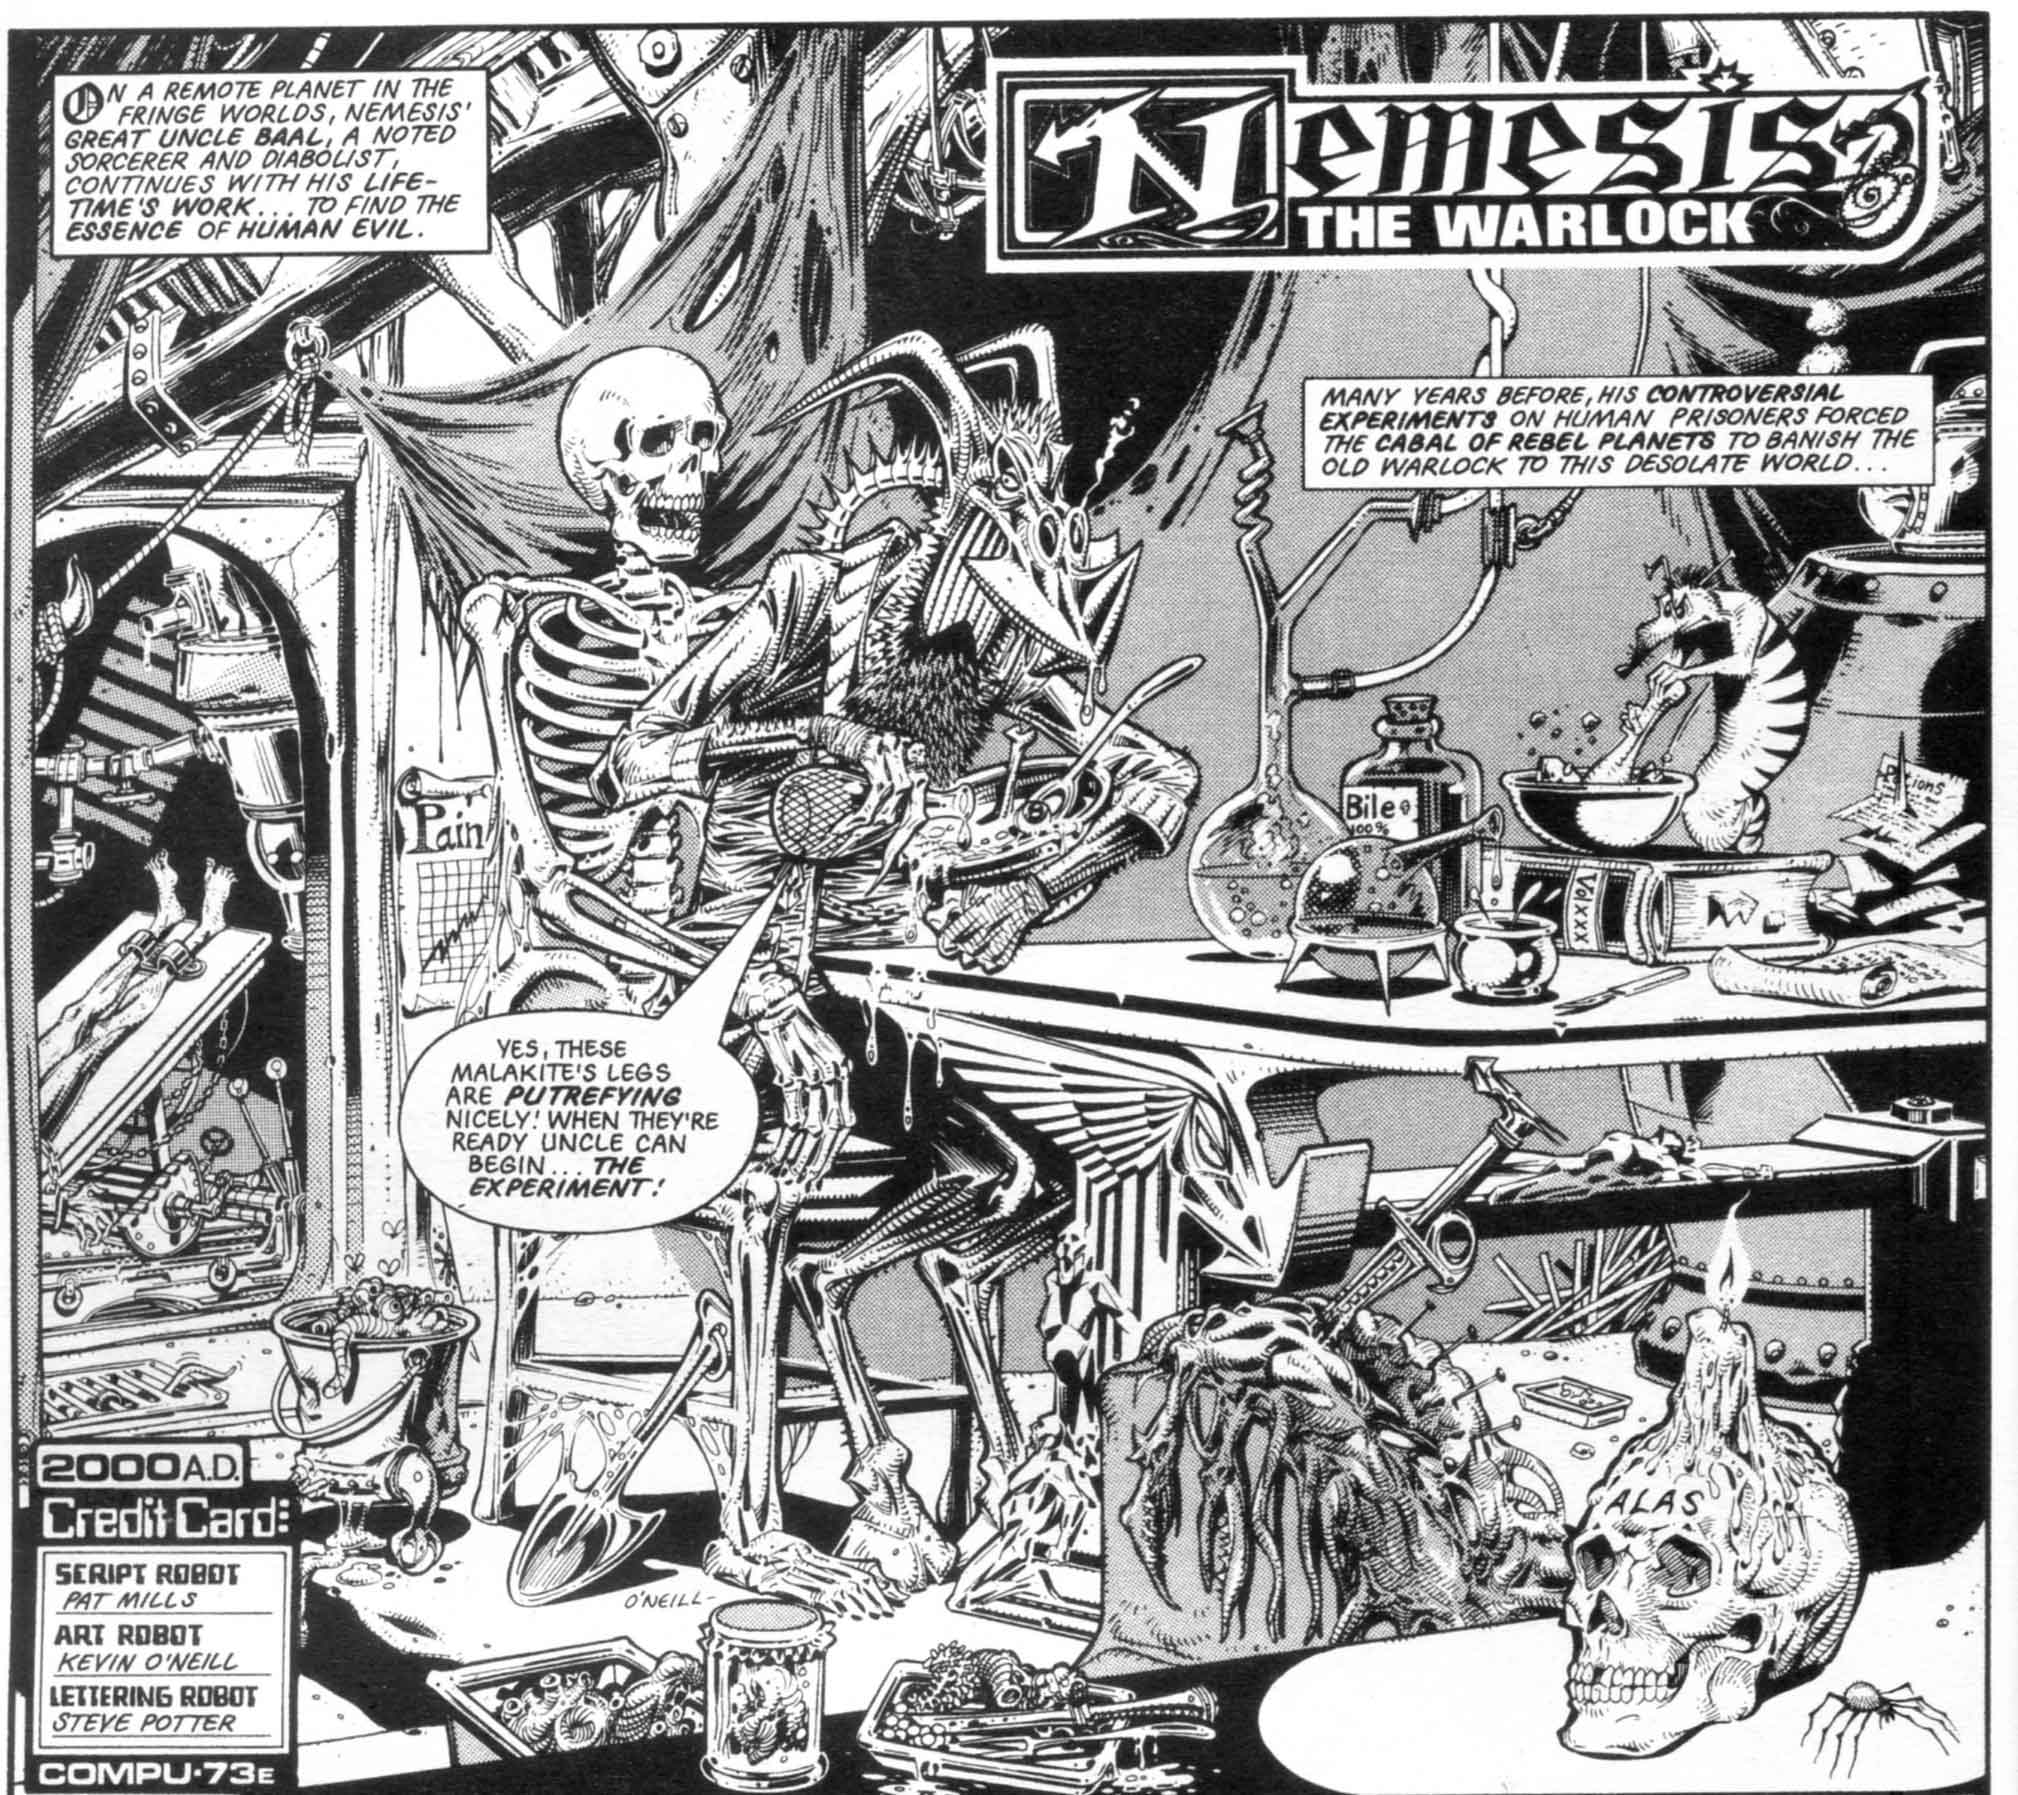 Nemesis the Warlock art Kevin O'Neill written by Pat Mills